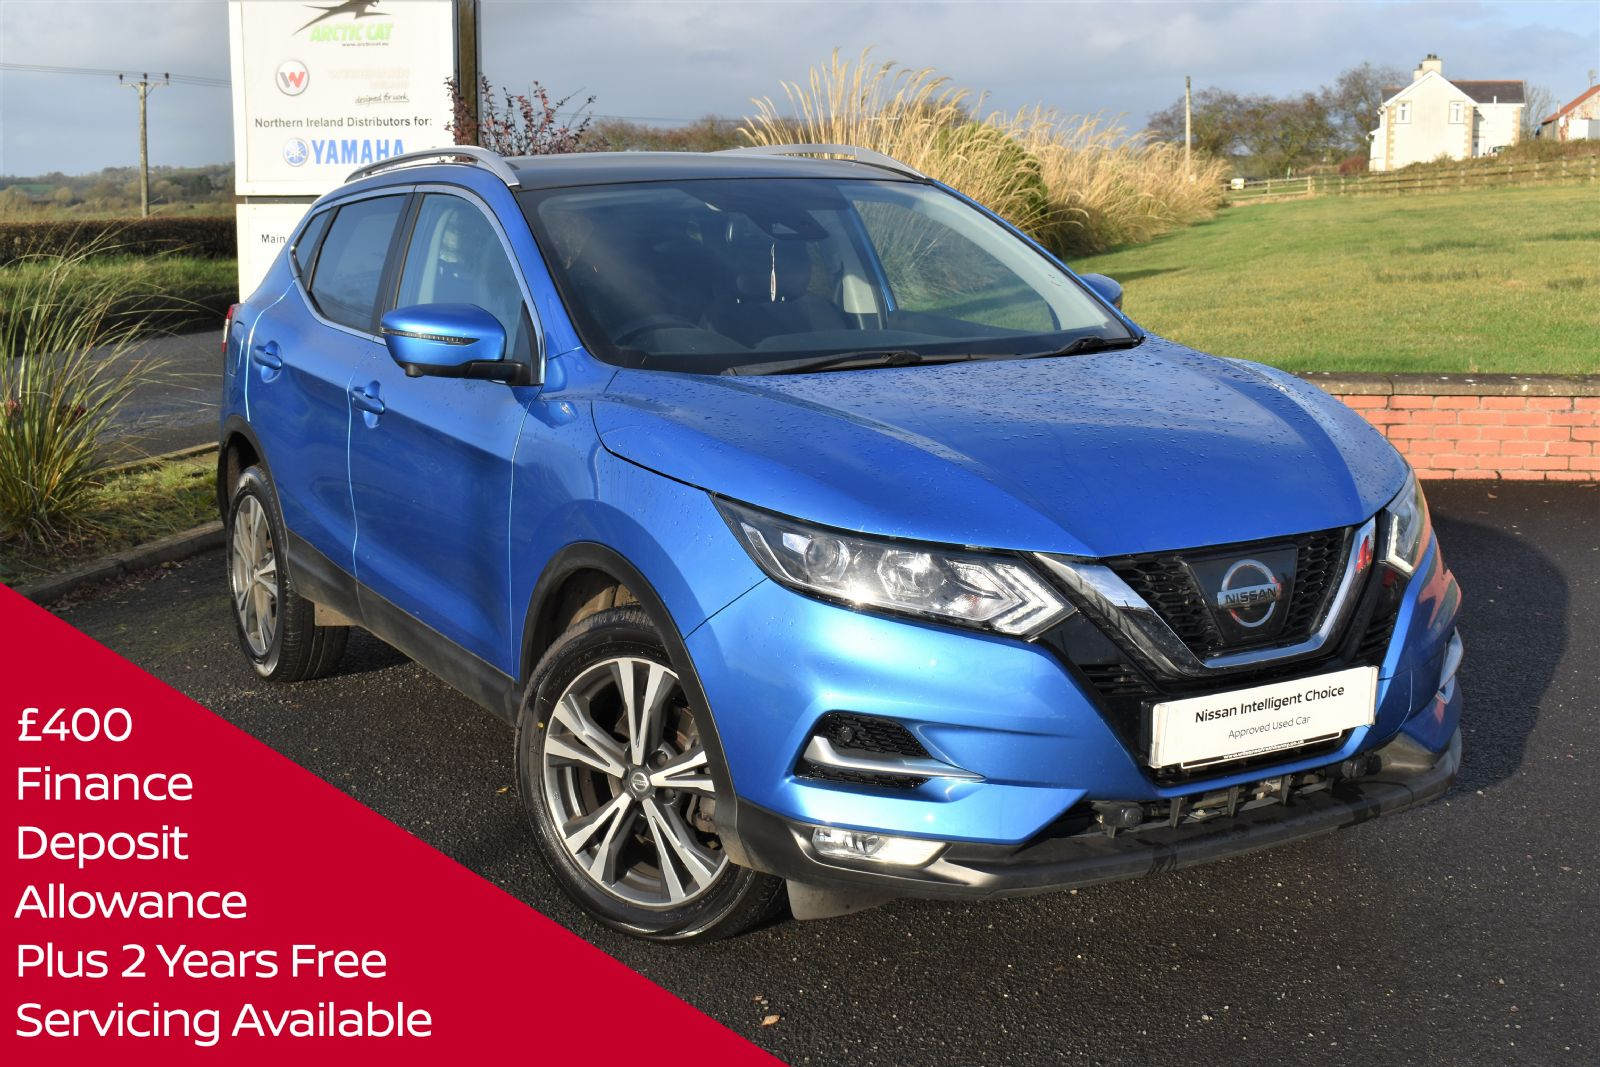 Nissan QASHQAI N-CONNECTA DCI AUTOMATIC DIESEL*GET FREE SERVICING AND FINANCE DEPOSIT WITH THIS CAR